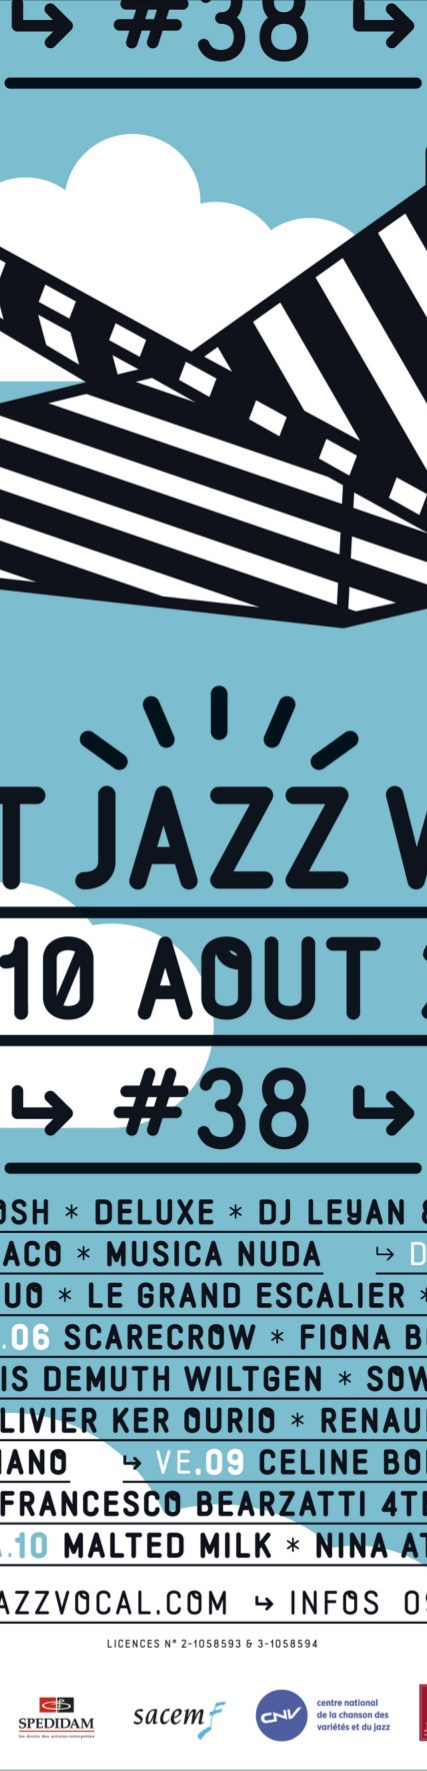 crestjazz Festivals août 2013 : 5 exemples daffiches associatives